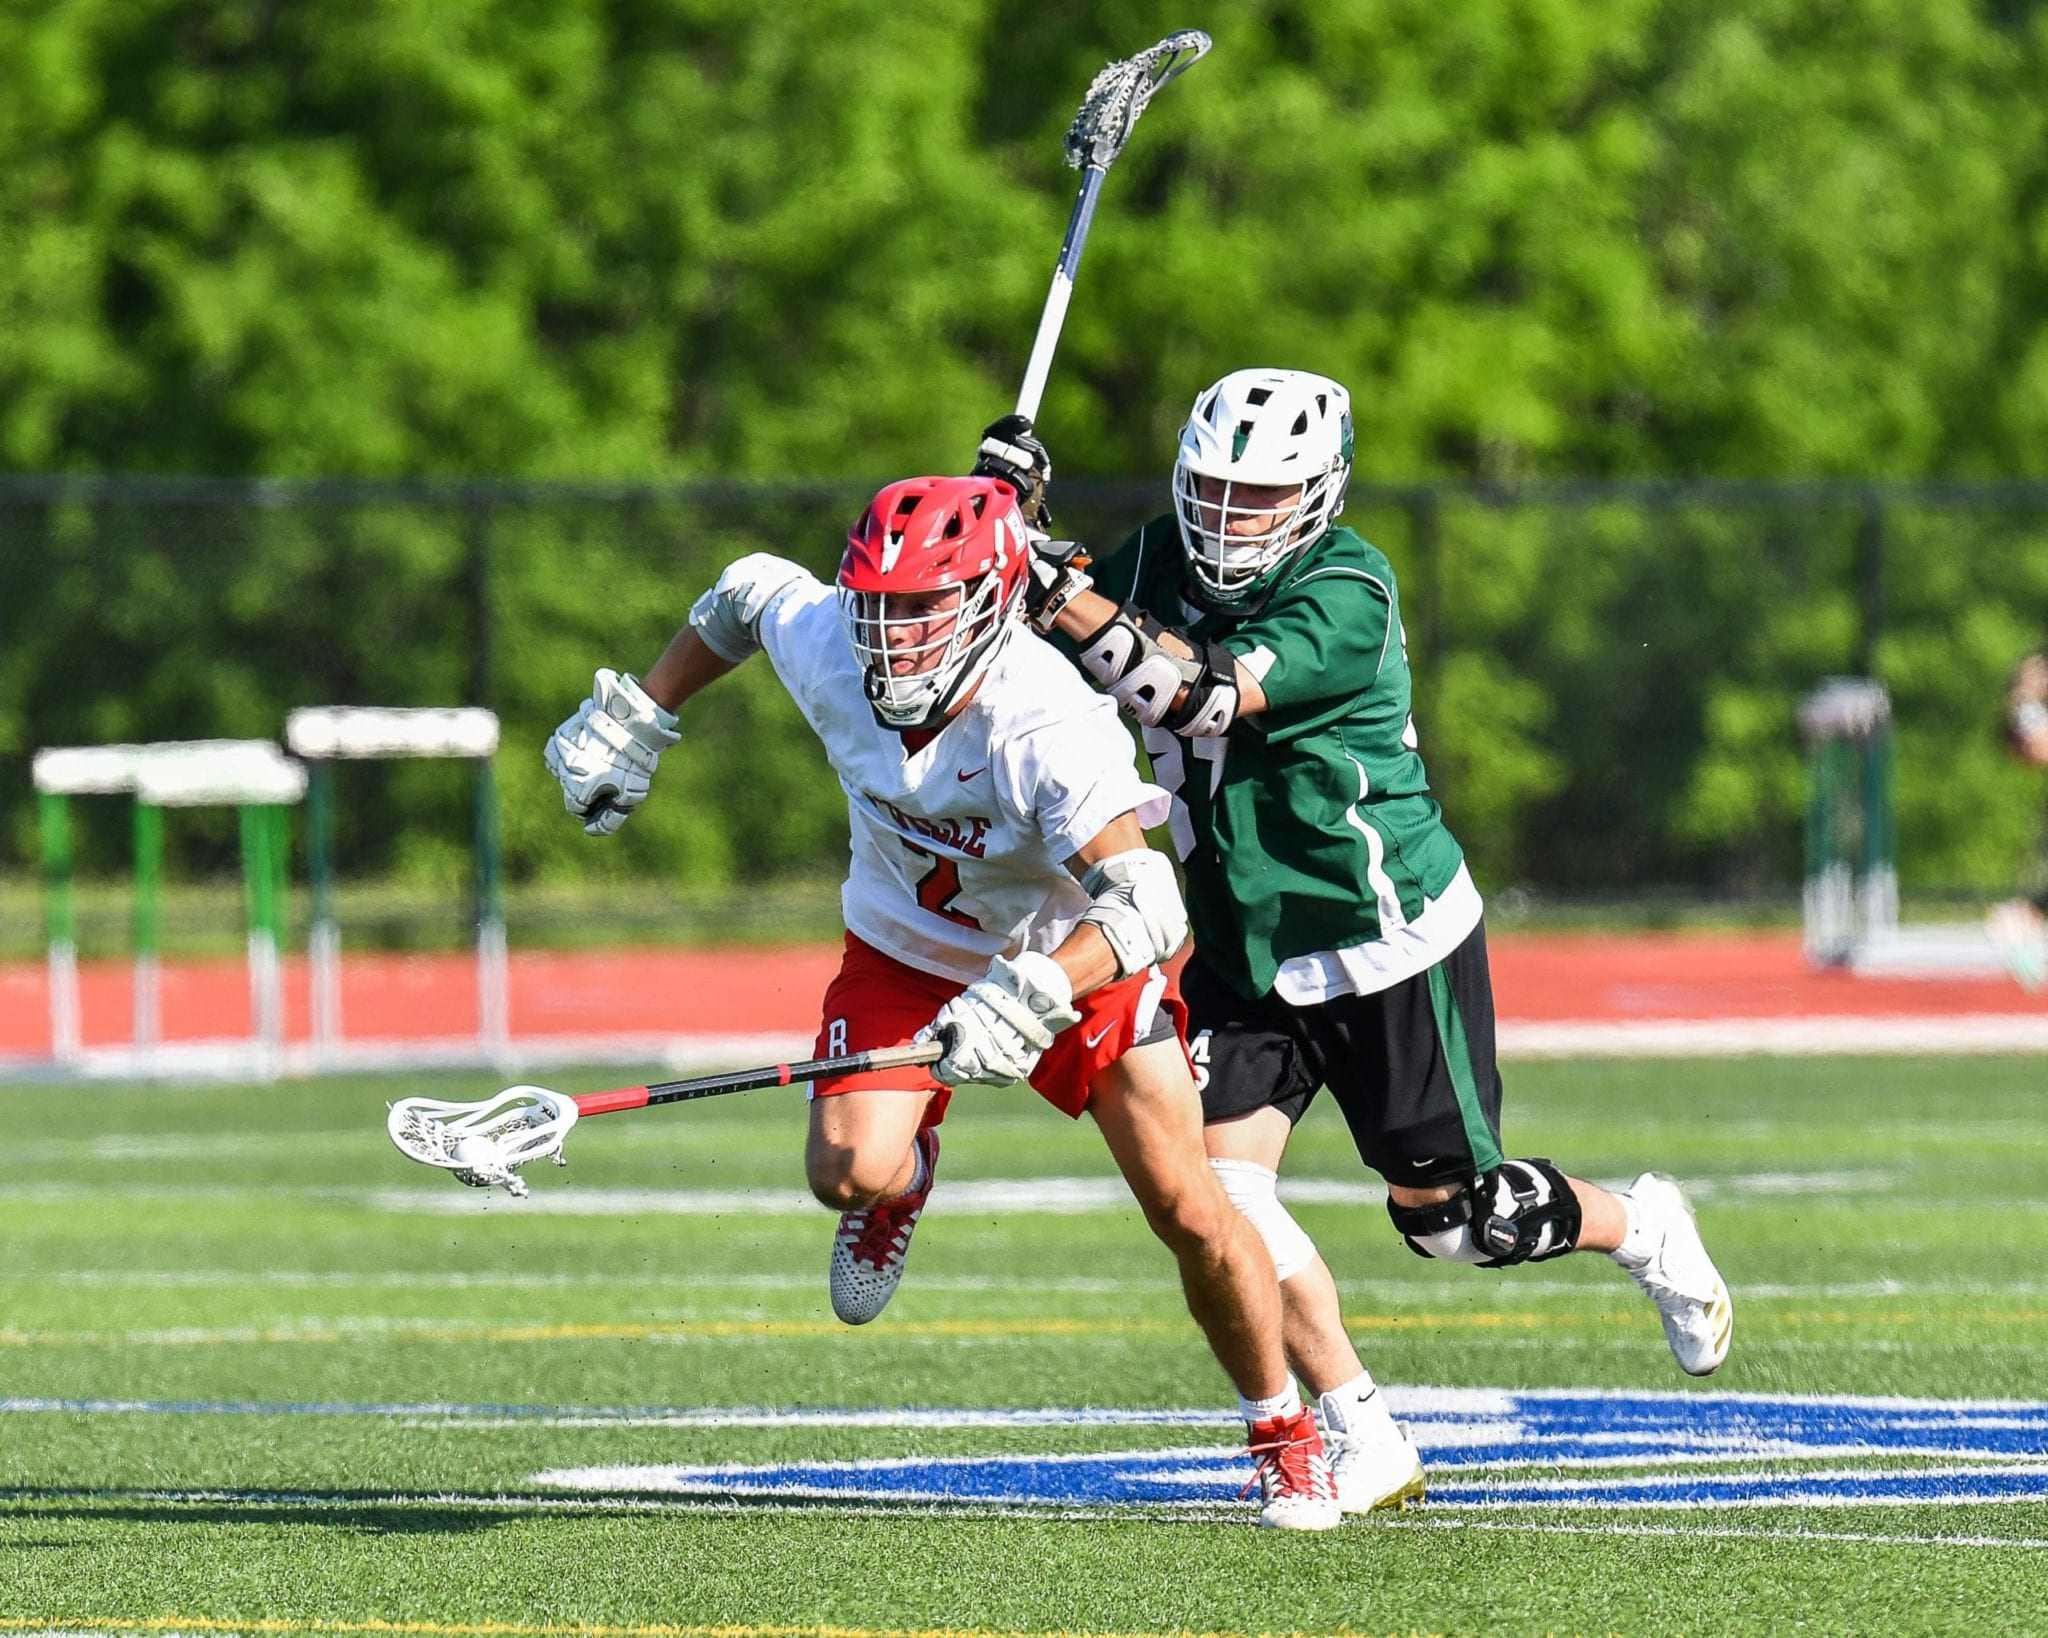 B'ville lacrosse teams ousted in sectional semifinals